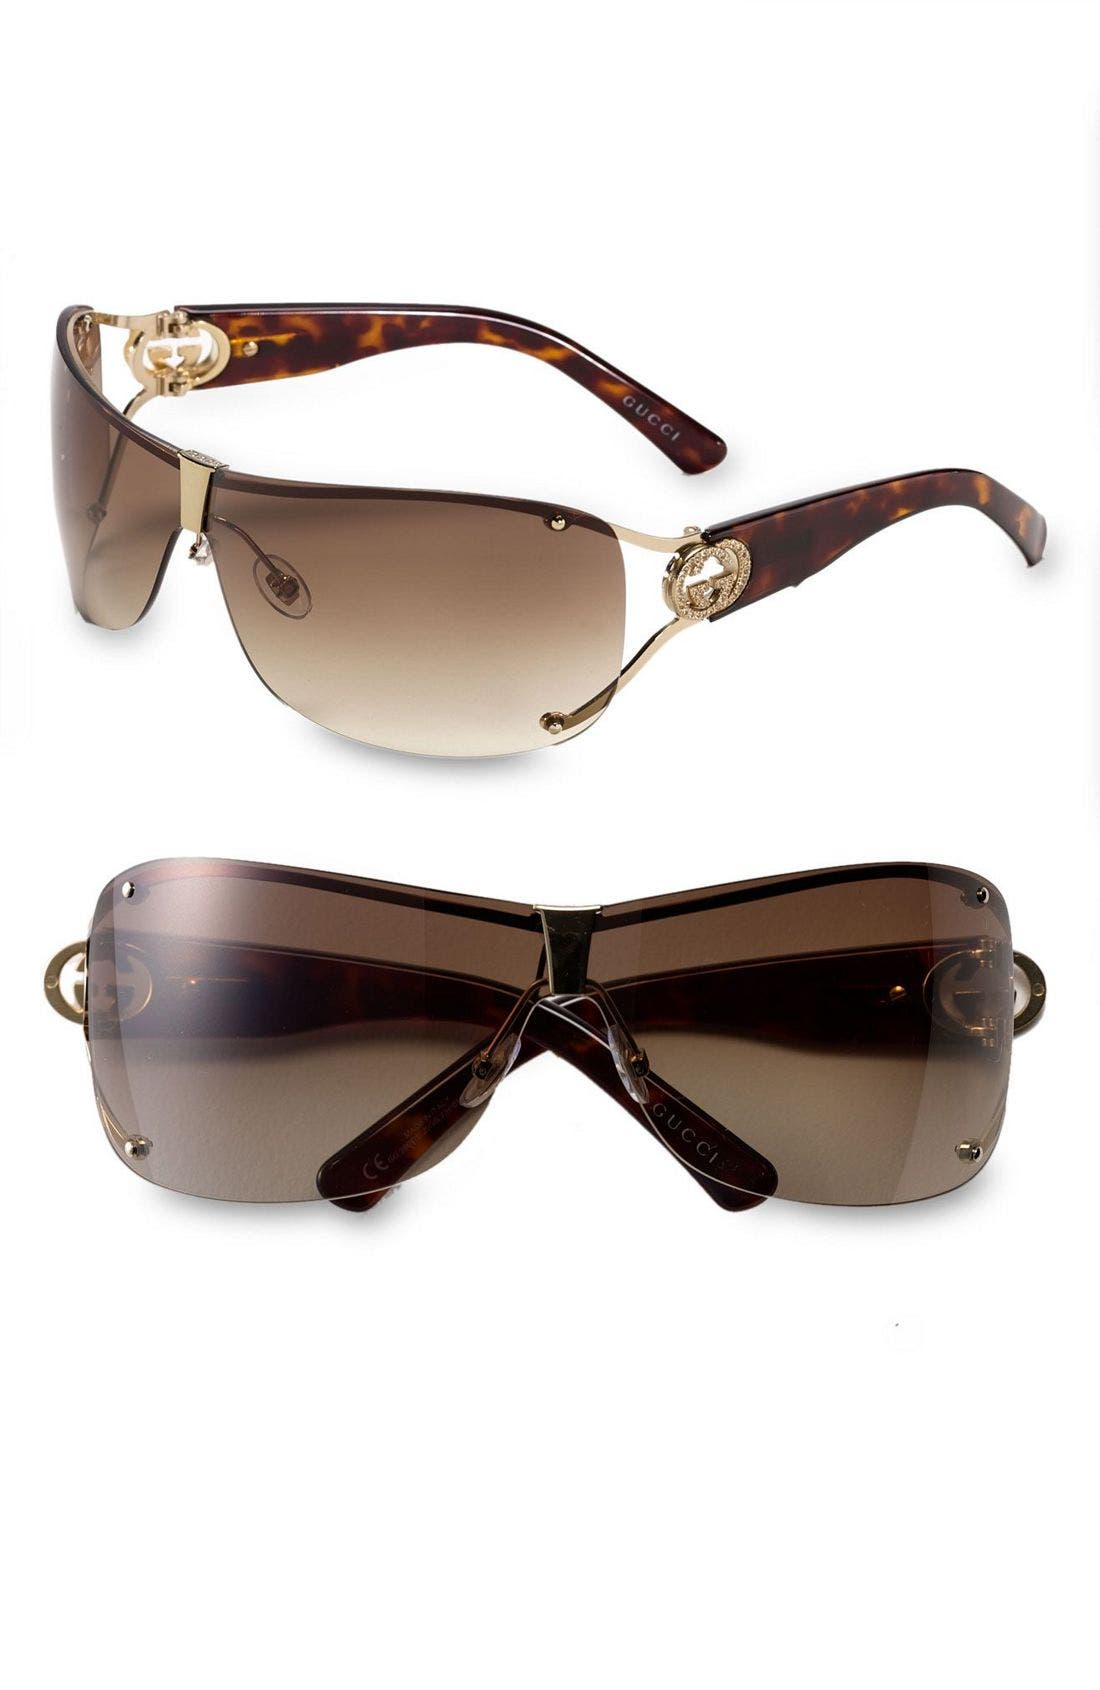 Alternate Image 1 Selected - Gucci 73mm Shield Sunglasses with Crystal Logo Detail